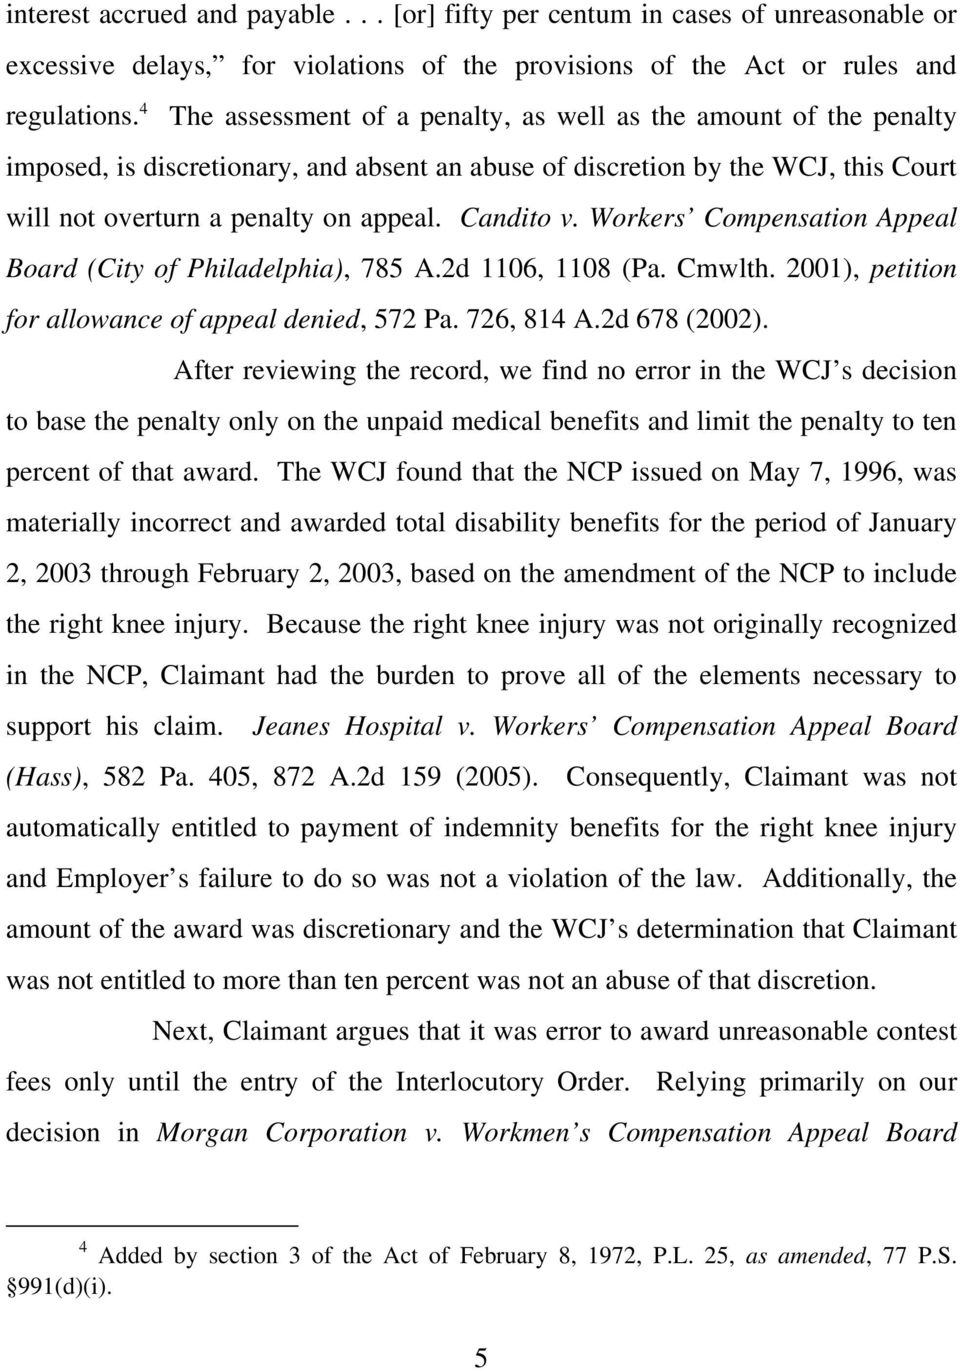 Candito v. Workers Compensation Appeal Board (City of Philadelphia), 785 A.2d 1106, 1108 (Pa. Cmwlth. 2001), petition for allowance of appeal denied, 572 Pa. 726, 814 A.2d 678 (2002).